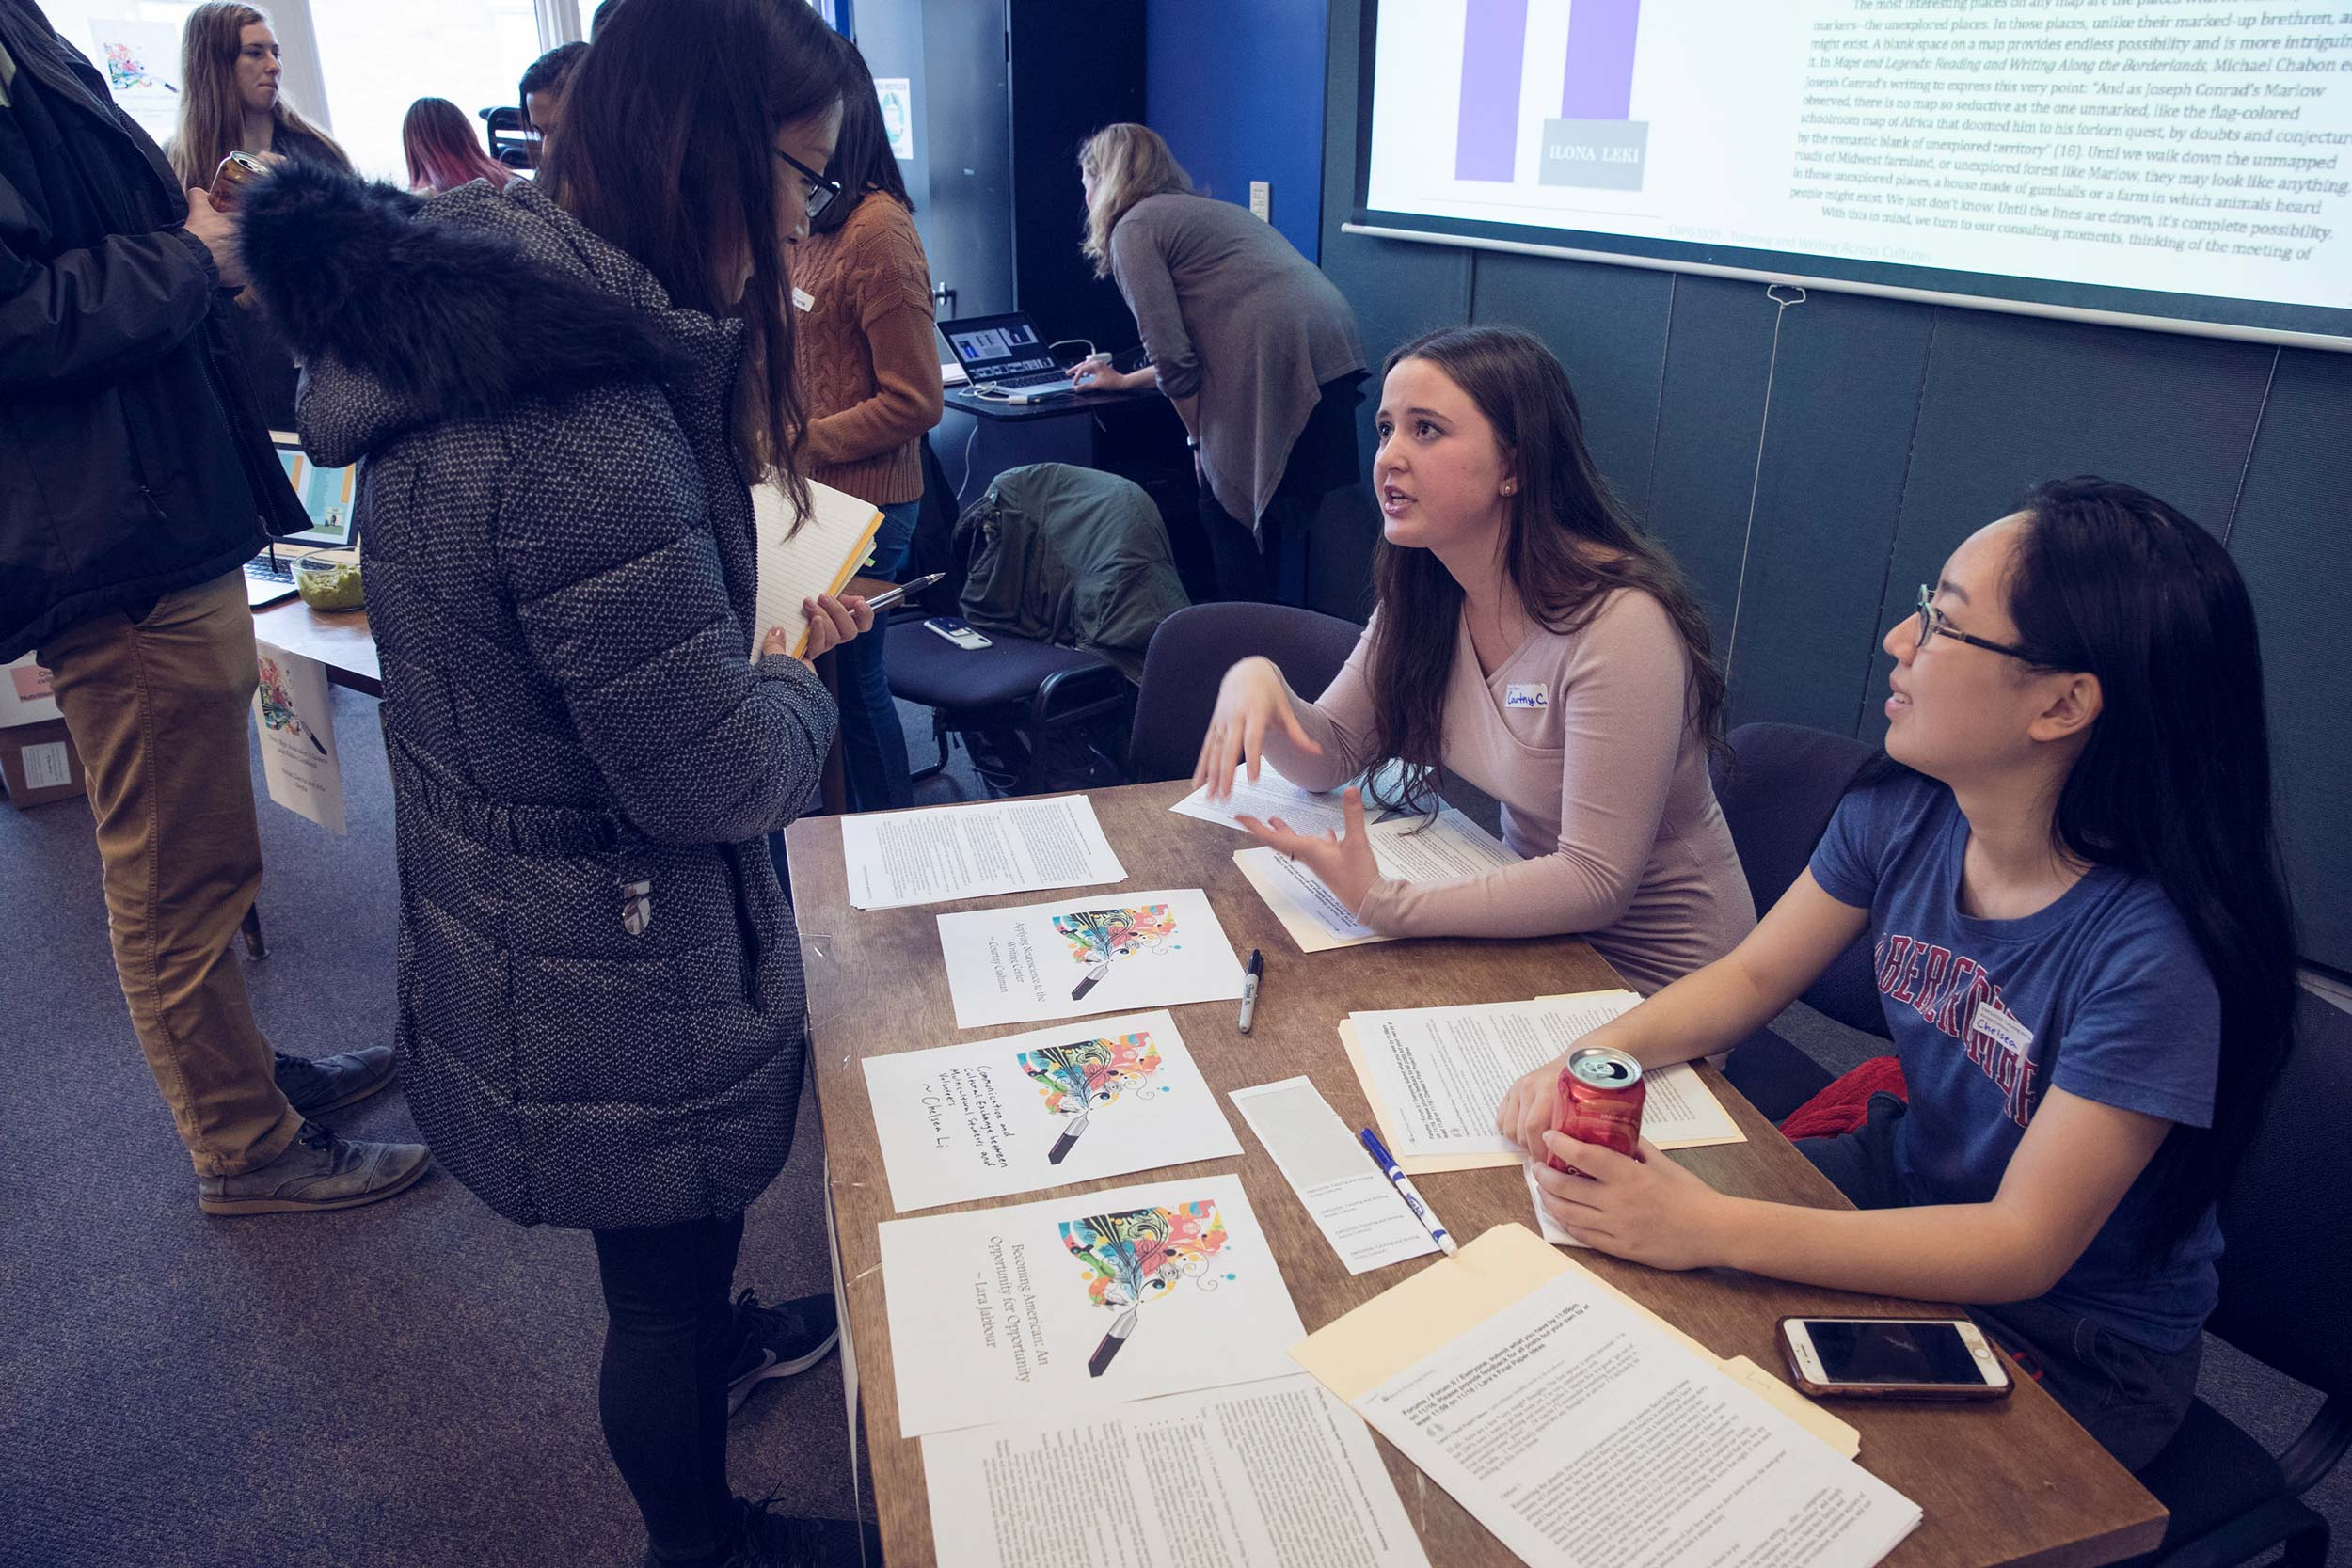 """Students Courtny Cushman, left, and Chelsea Li discussed their final projects for the course, """"Tutoring Writing Across Cultures,"""" at an English department showcase on community engagement."""